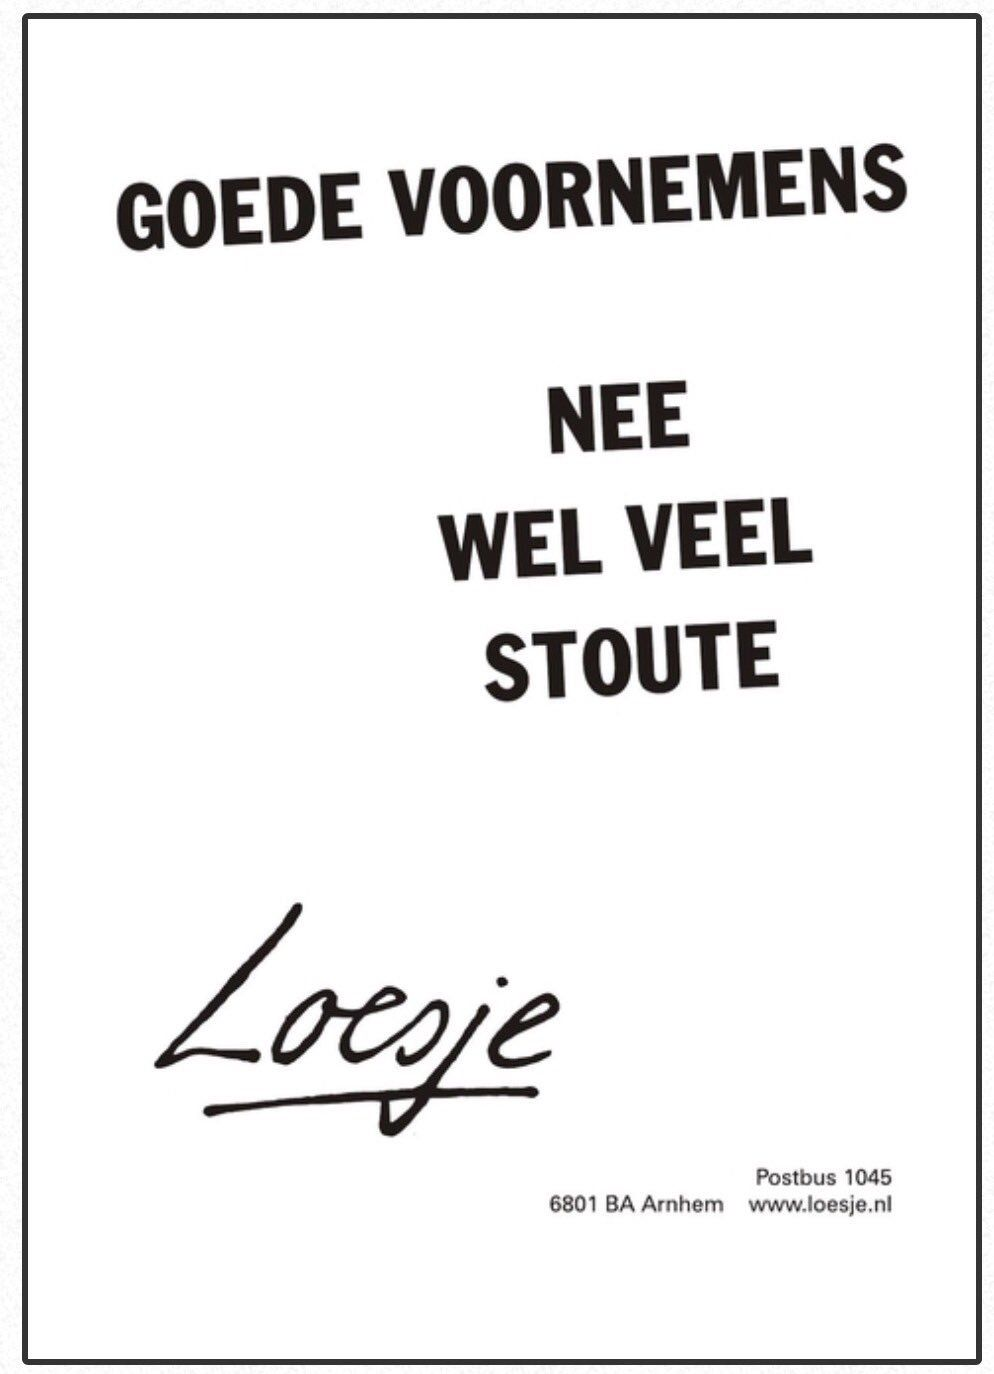 Loesje v/d Posters on Twitter Quotes about new year